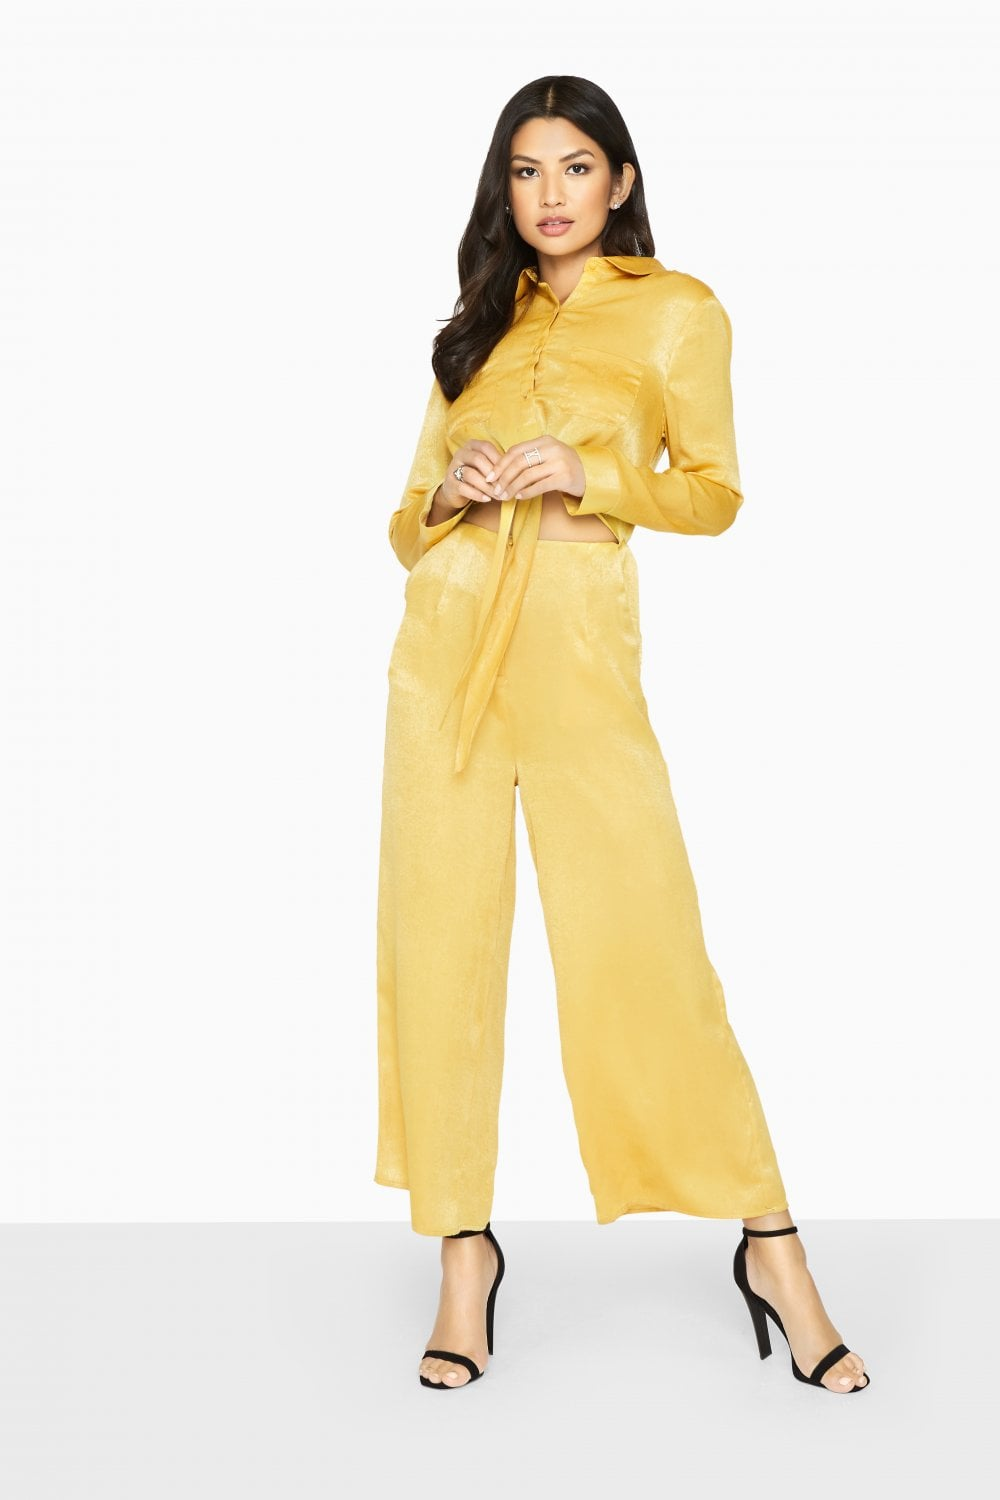 7184c75aa61100 Outlet Girls On Film Liquid Gold Utility Jumpsuit - Outlet Girls On Film  from Little Mistress UK